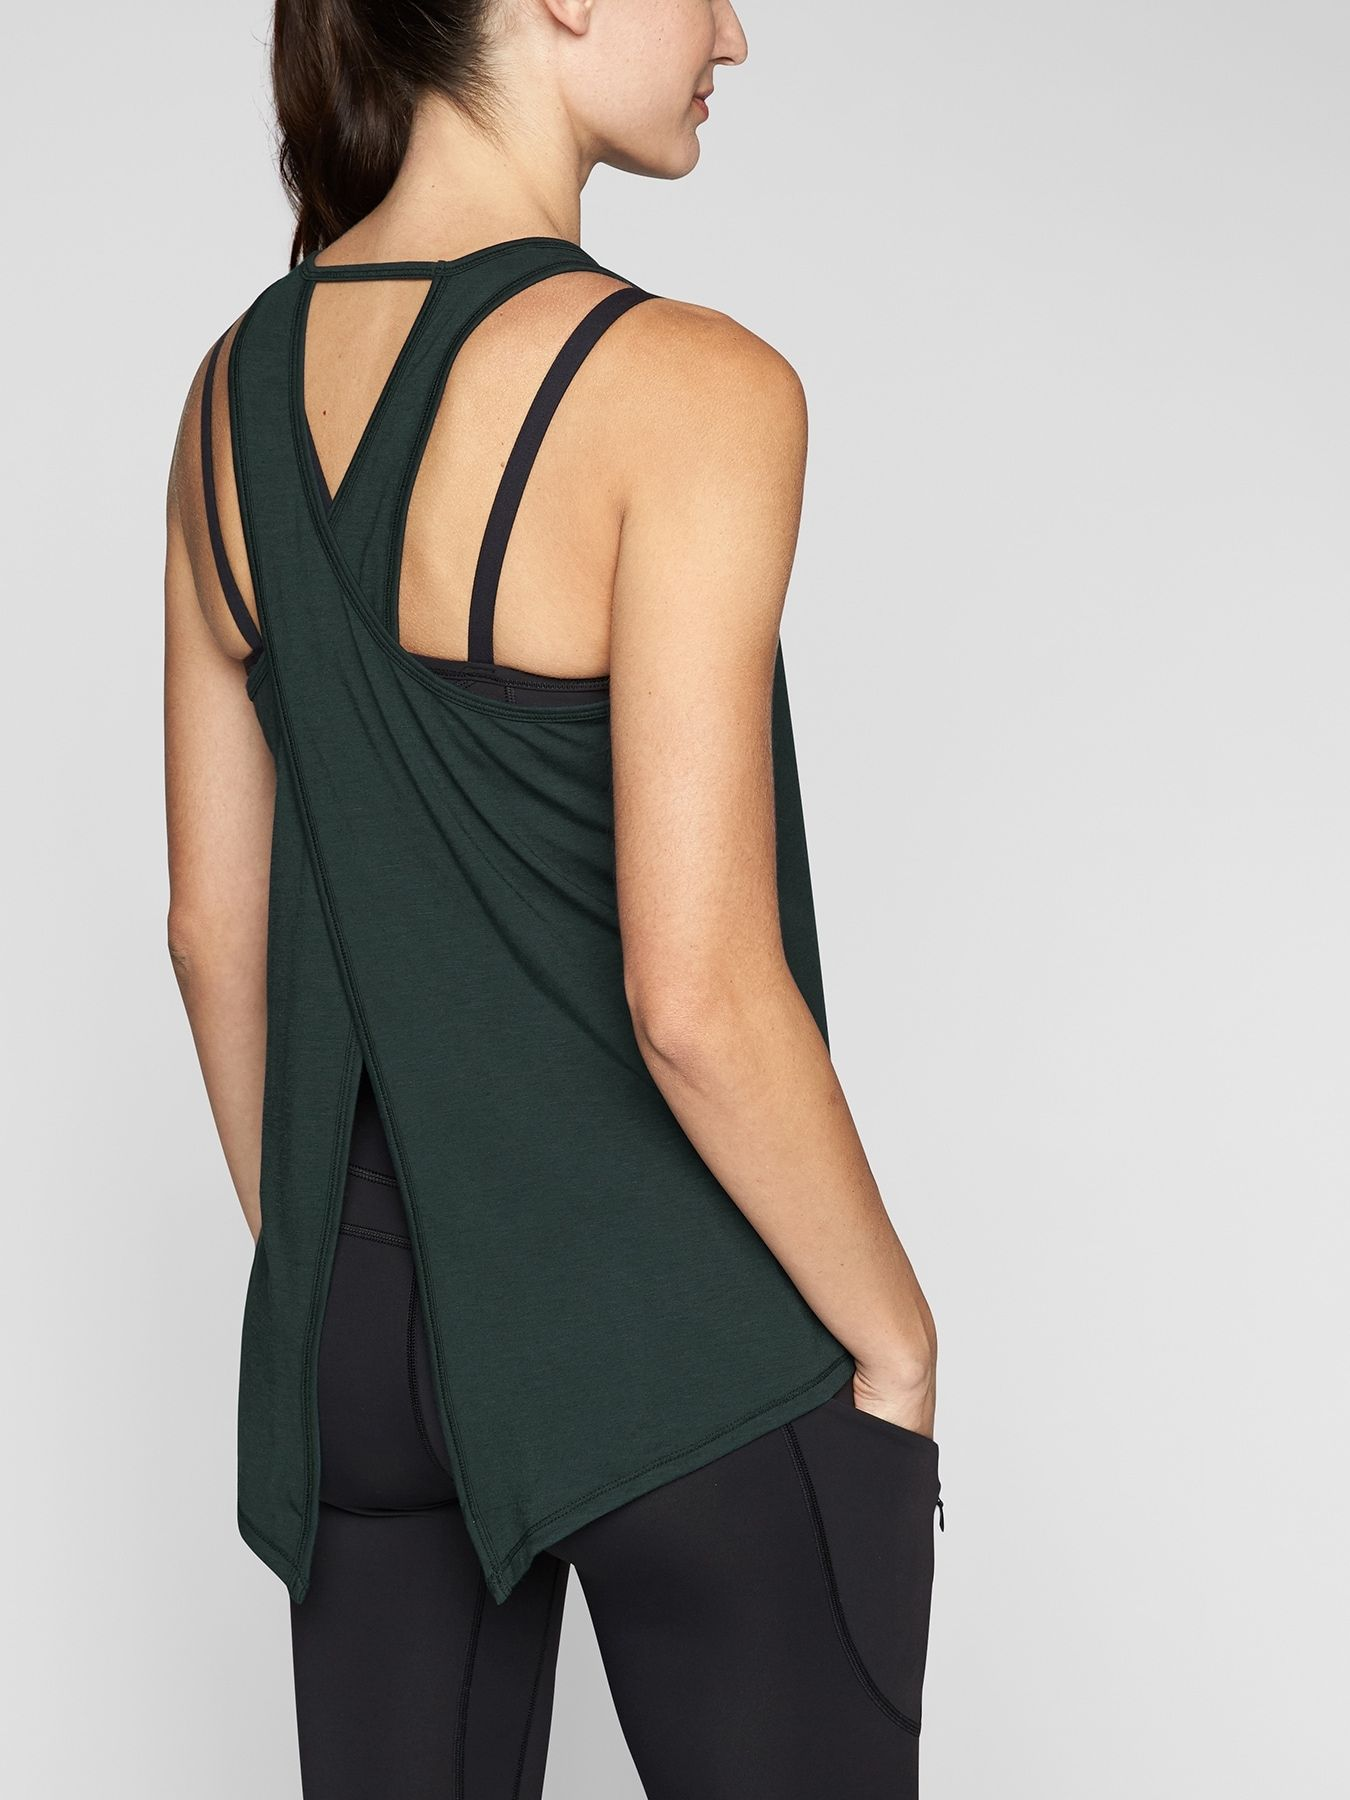 Essence Tie Back Tank Athleta 44 (With images